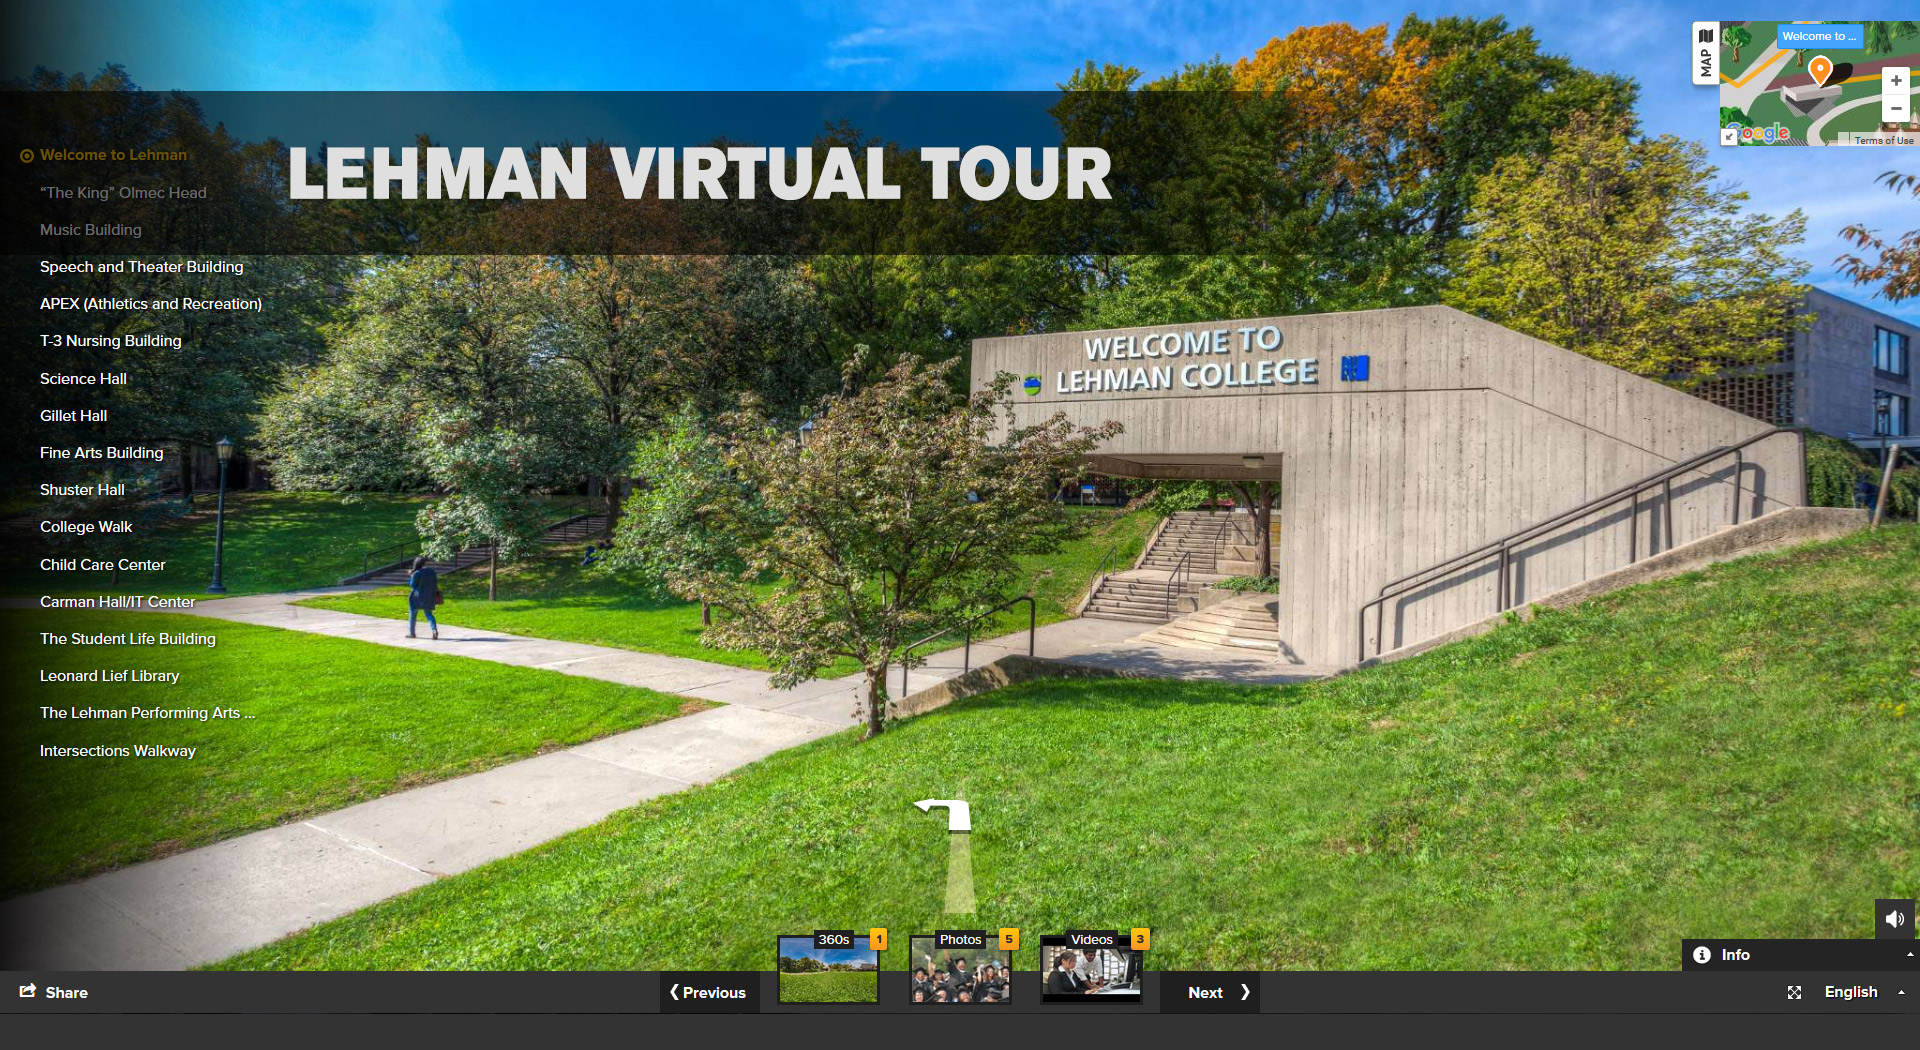 Take the Lehman College Virtual Tour